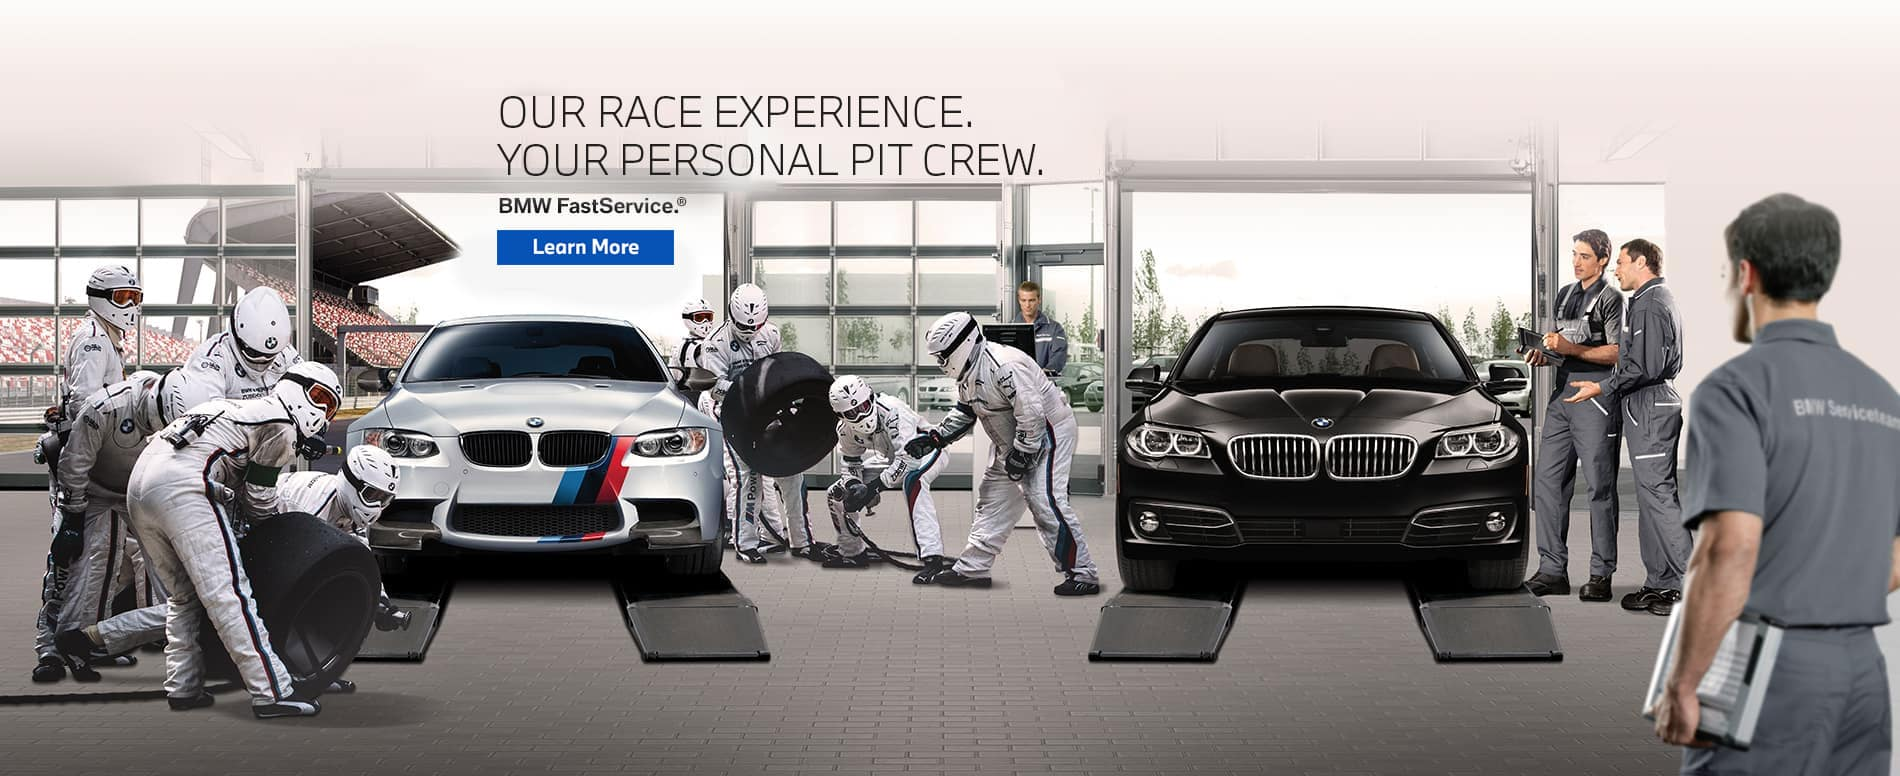 Crew members working on two BMW cars. BMW fast service, click to learn more.